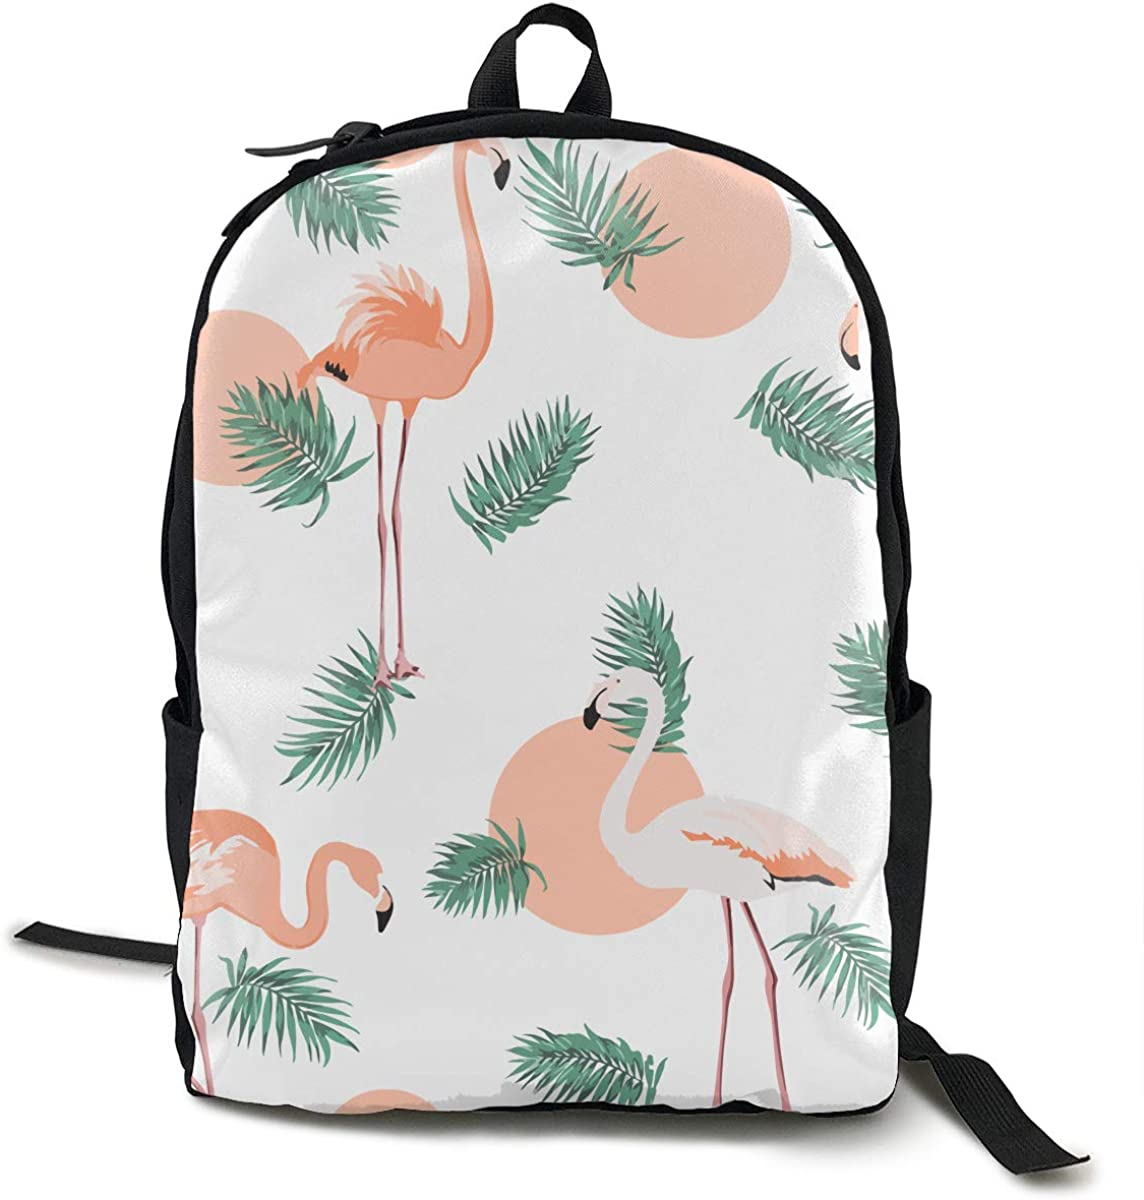 O-X_X-O Casual Rucksack for Laptop Books Unisex College School Travel Backpack